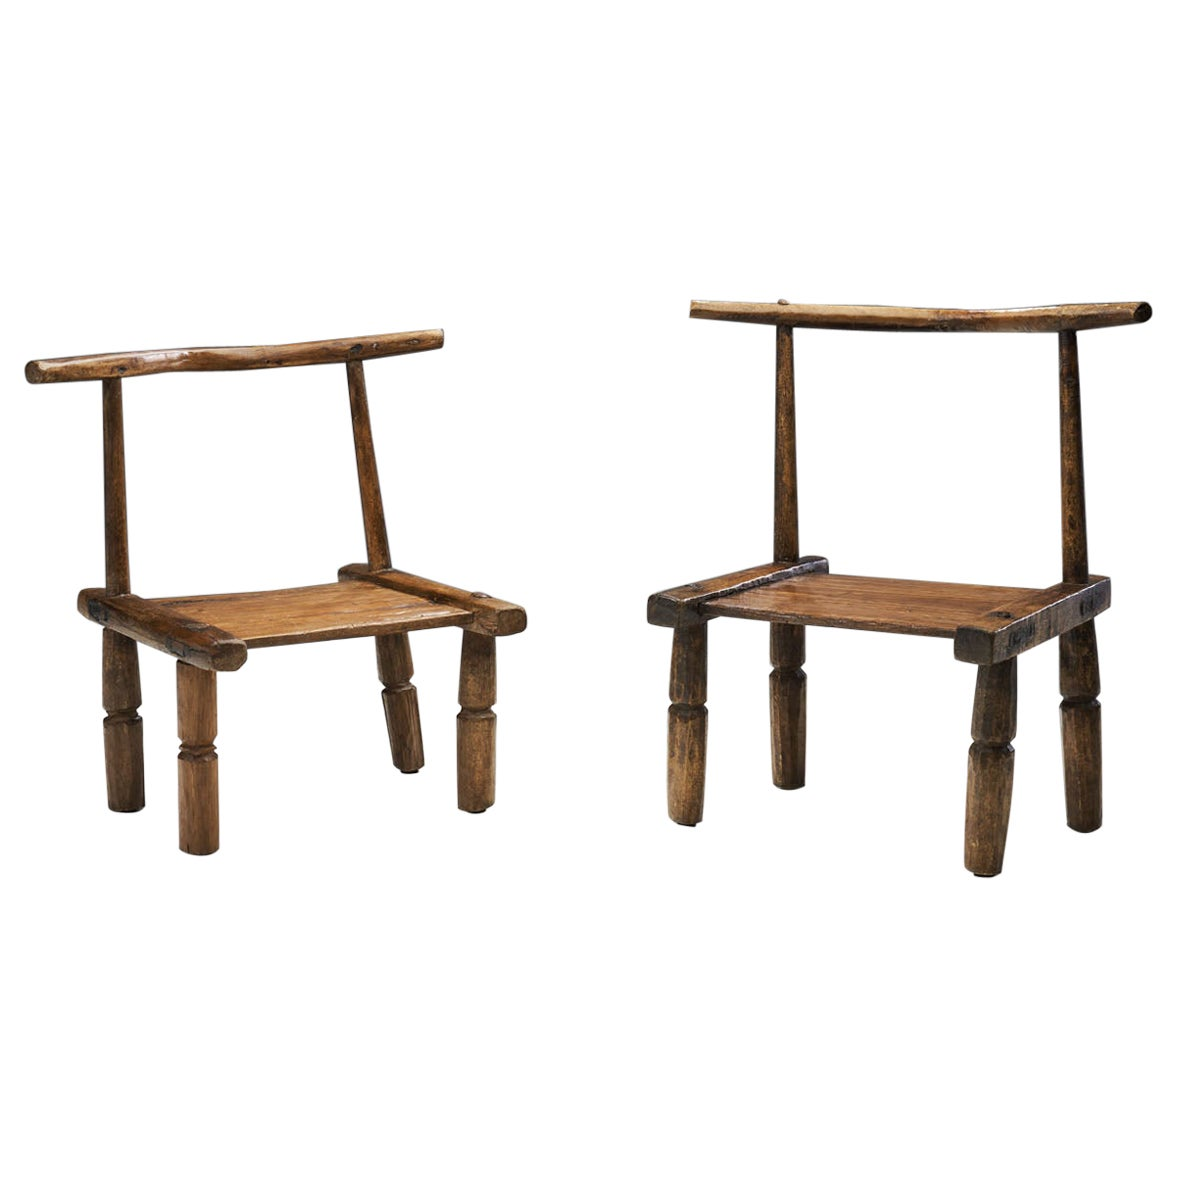 Hand Carved African Baule Tribal Chairs, Ivory Coast, Early 20th century